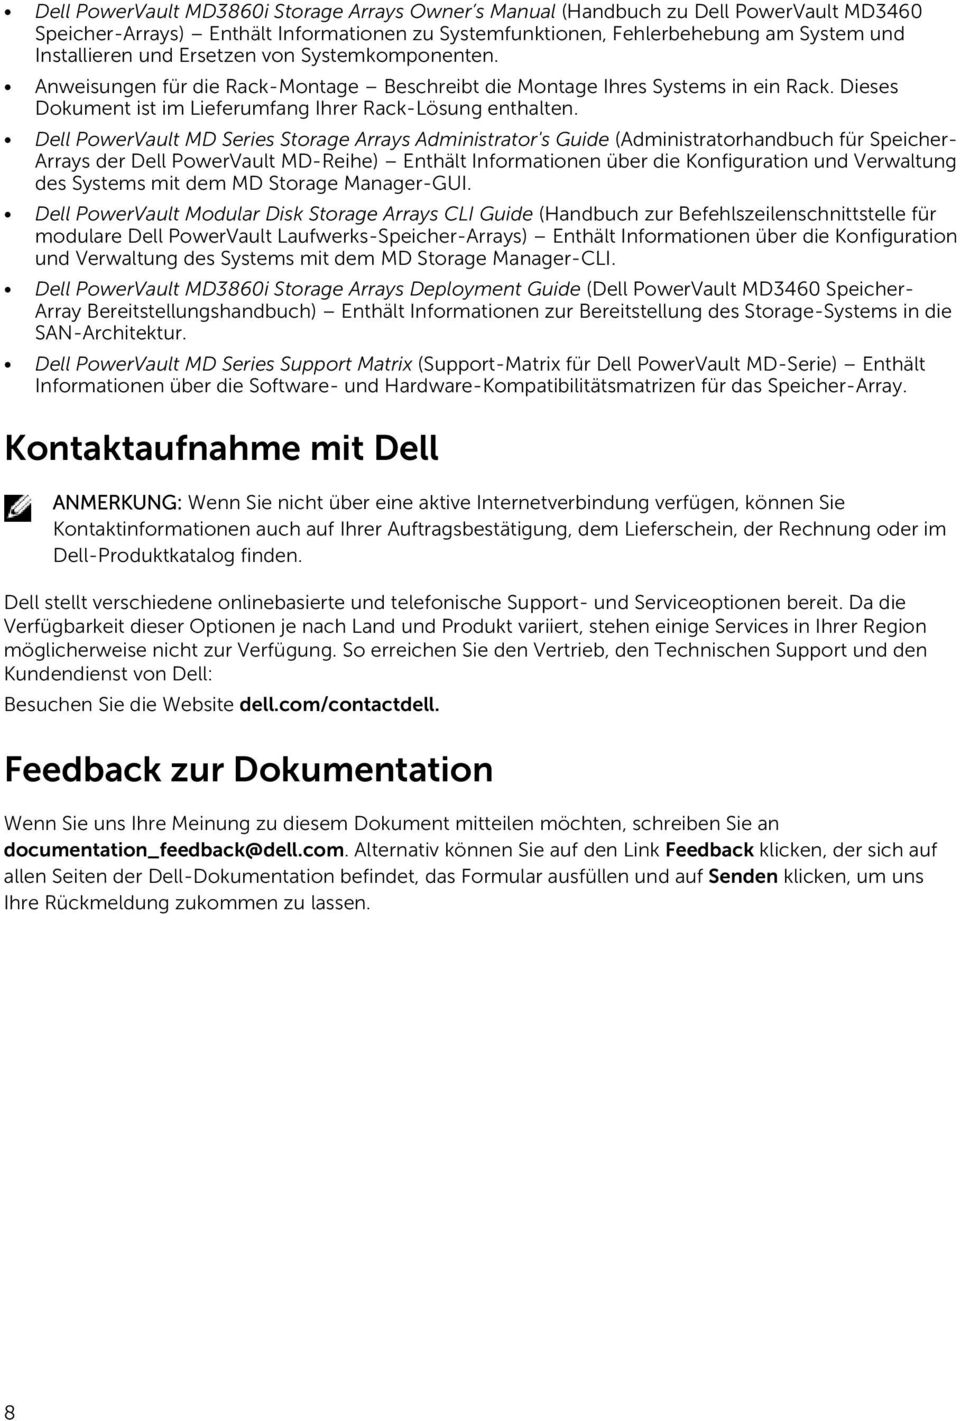 Dell PowerVault MD Series Storage Arrays Administrator's Guide (Administratorhandbuch für Speicher- Arrays der Dell PowerVault MD-Reihe) Enthält Informationen über die Konfiguration und Verwaltung